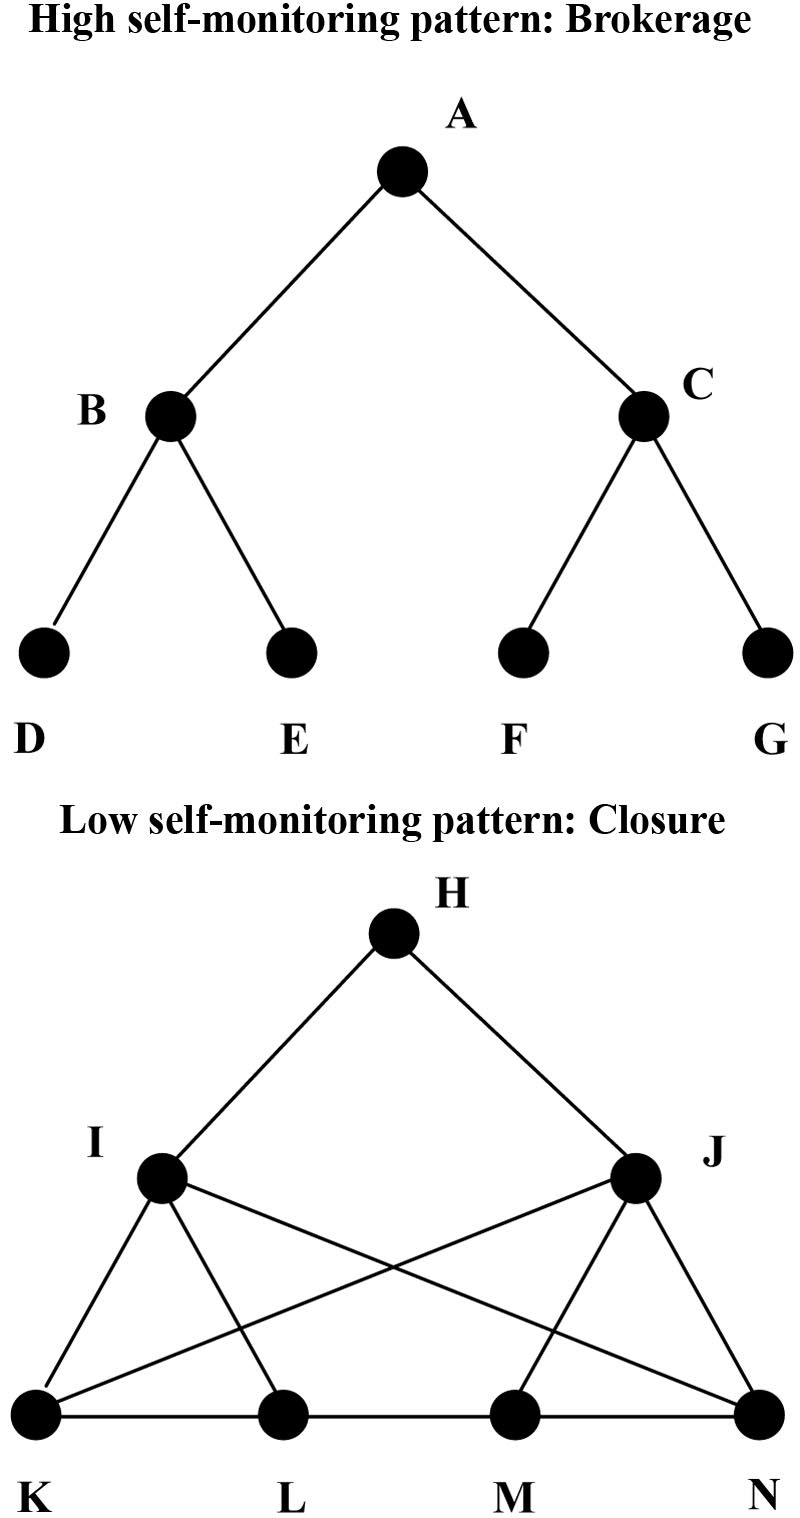 Expected patterns of indirect brokerage for high and low